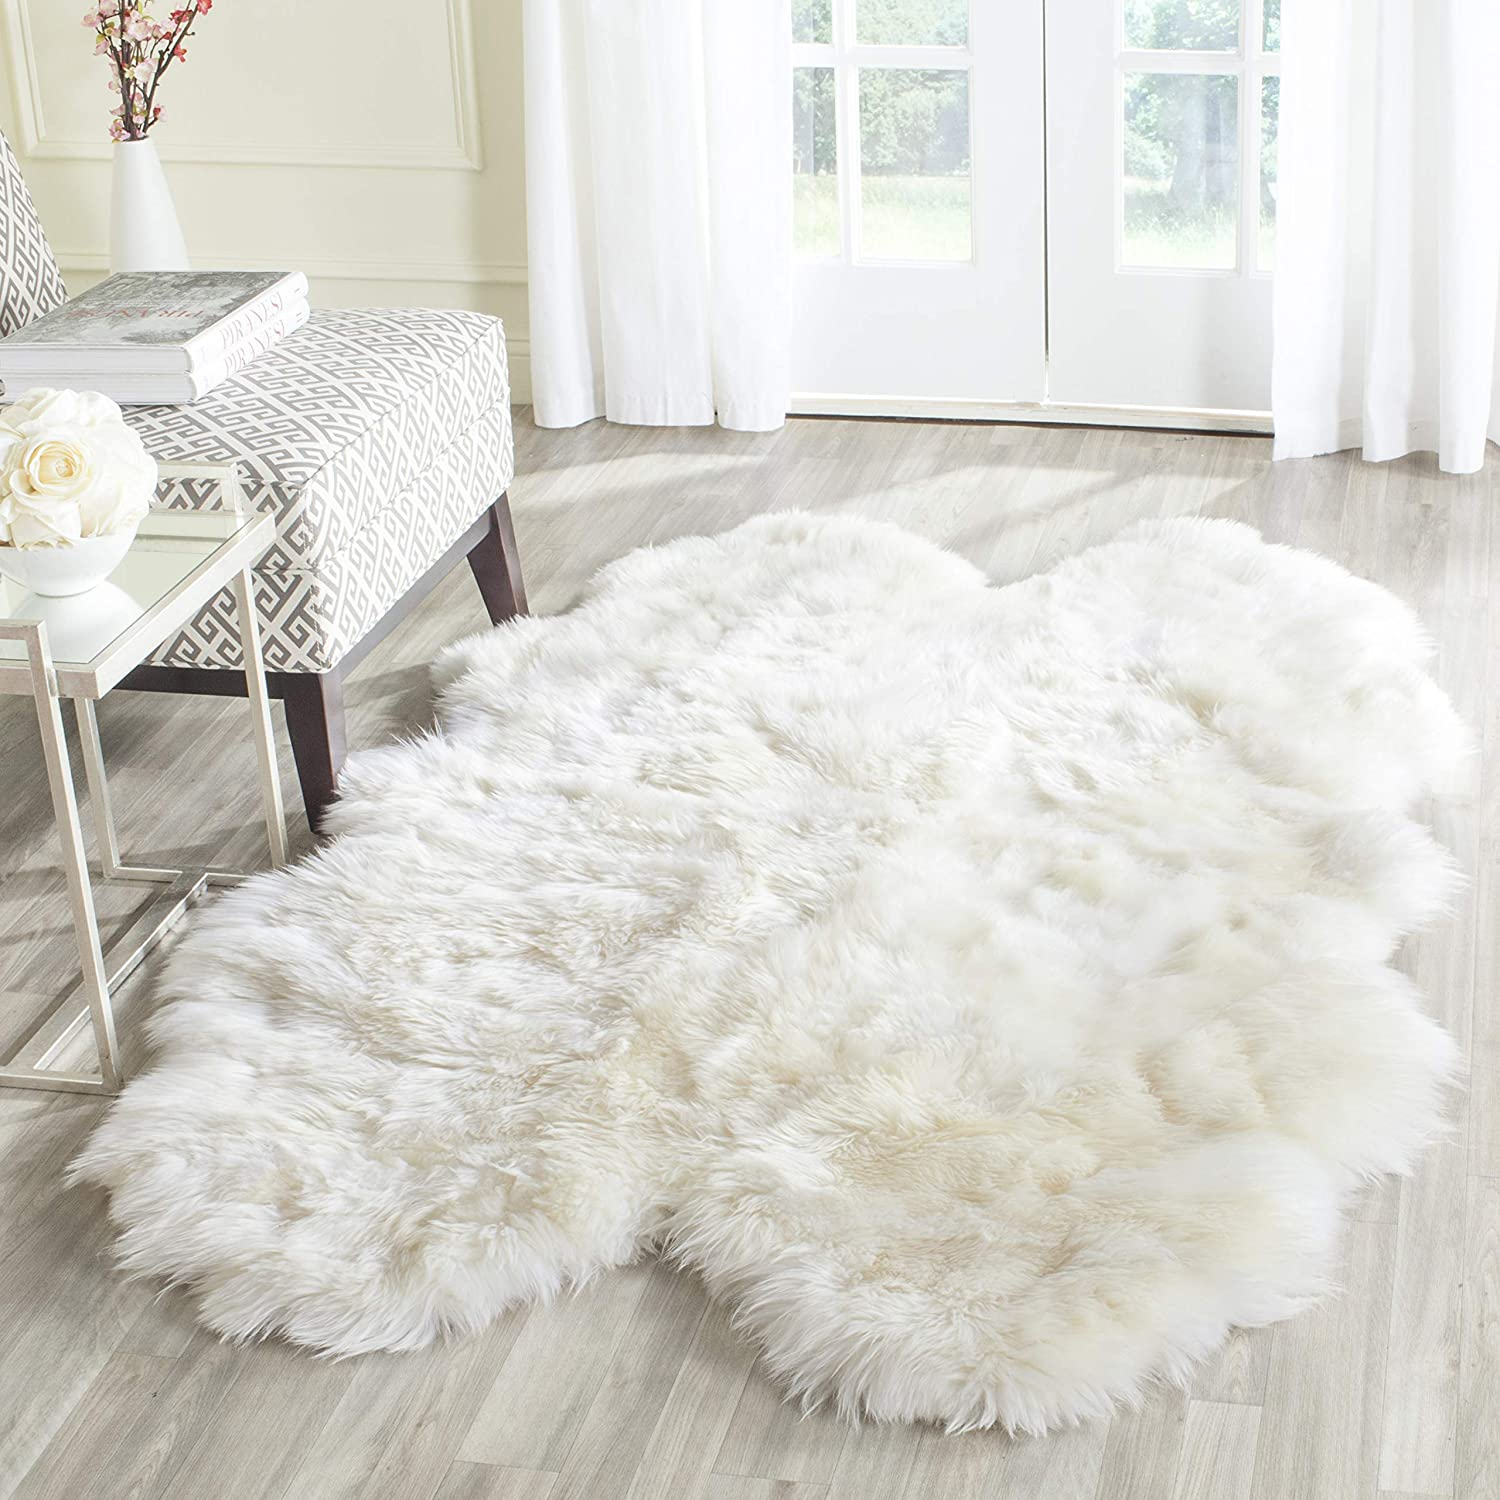 Amazon Com Safavieh Sheep Skin Collection Shs211a Handmade Rustic Glam Genuine Pelt 3 4 Inch Extra Thick Area Rug 4 X 6 Natural White Furniture Decor